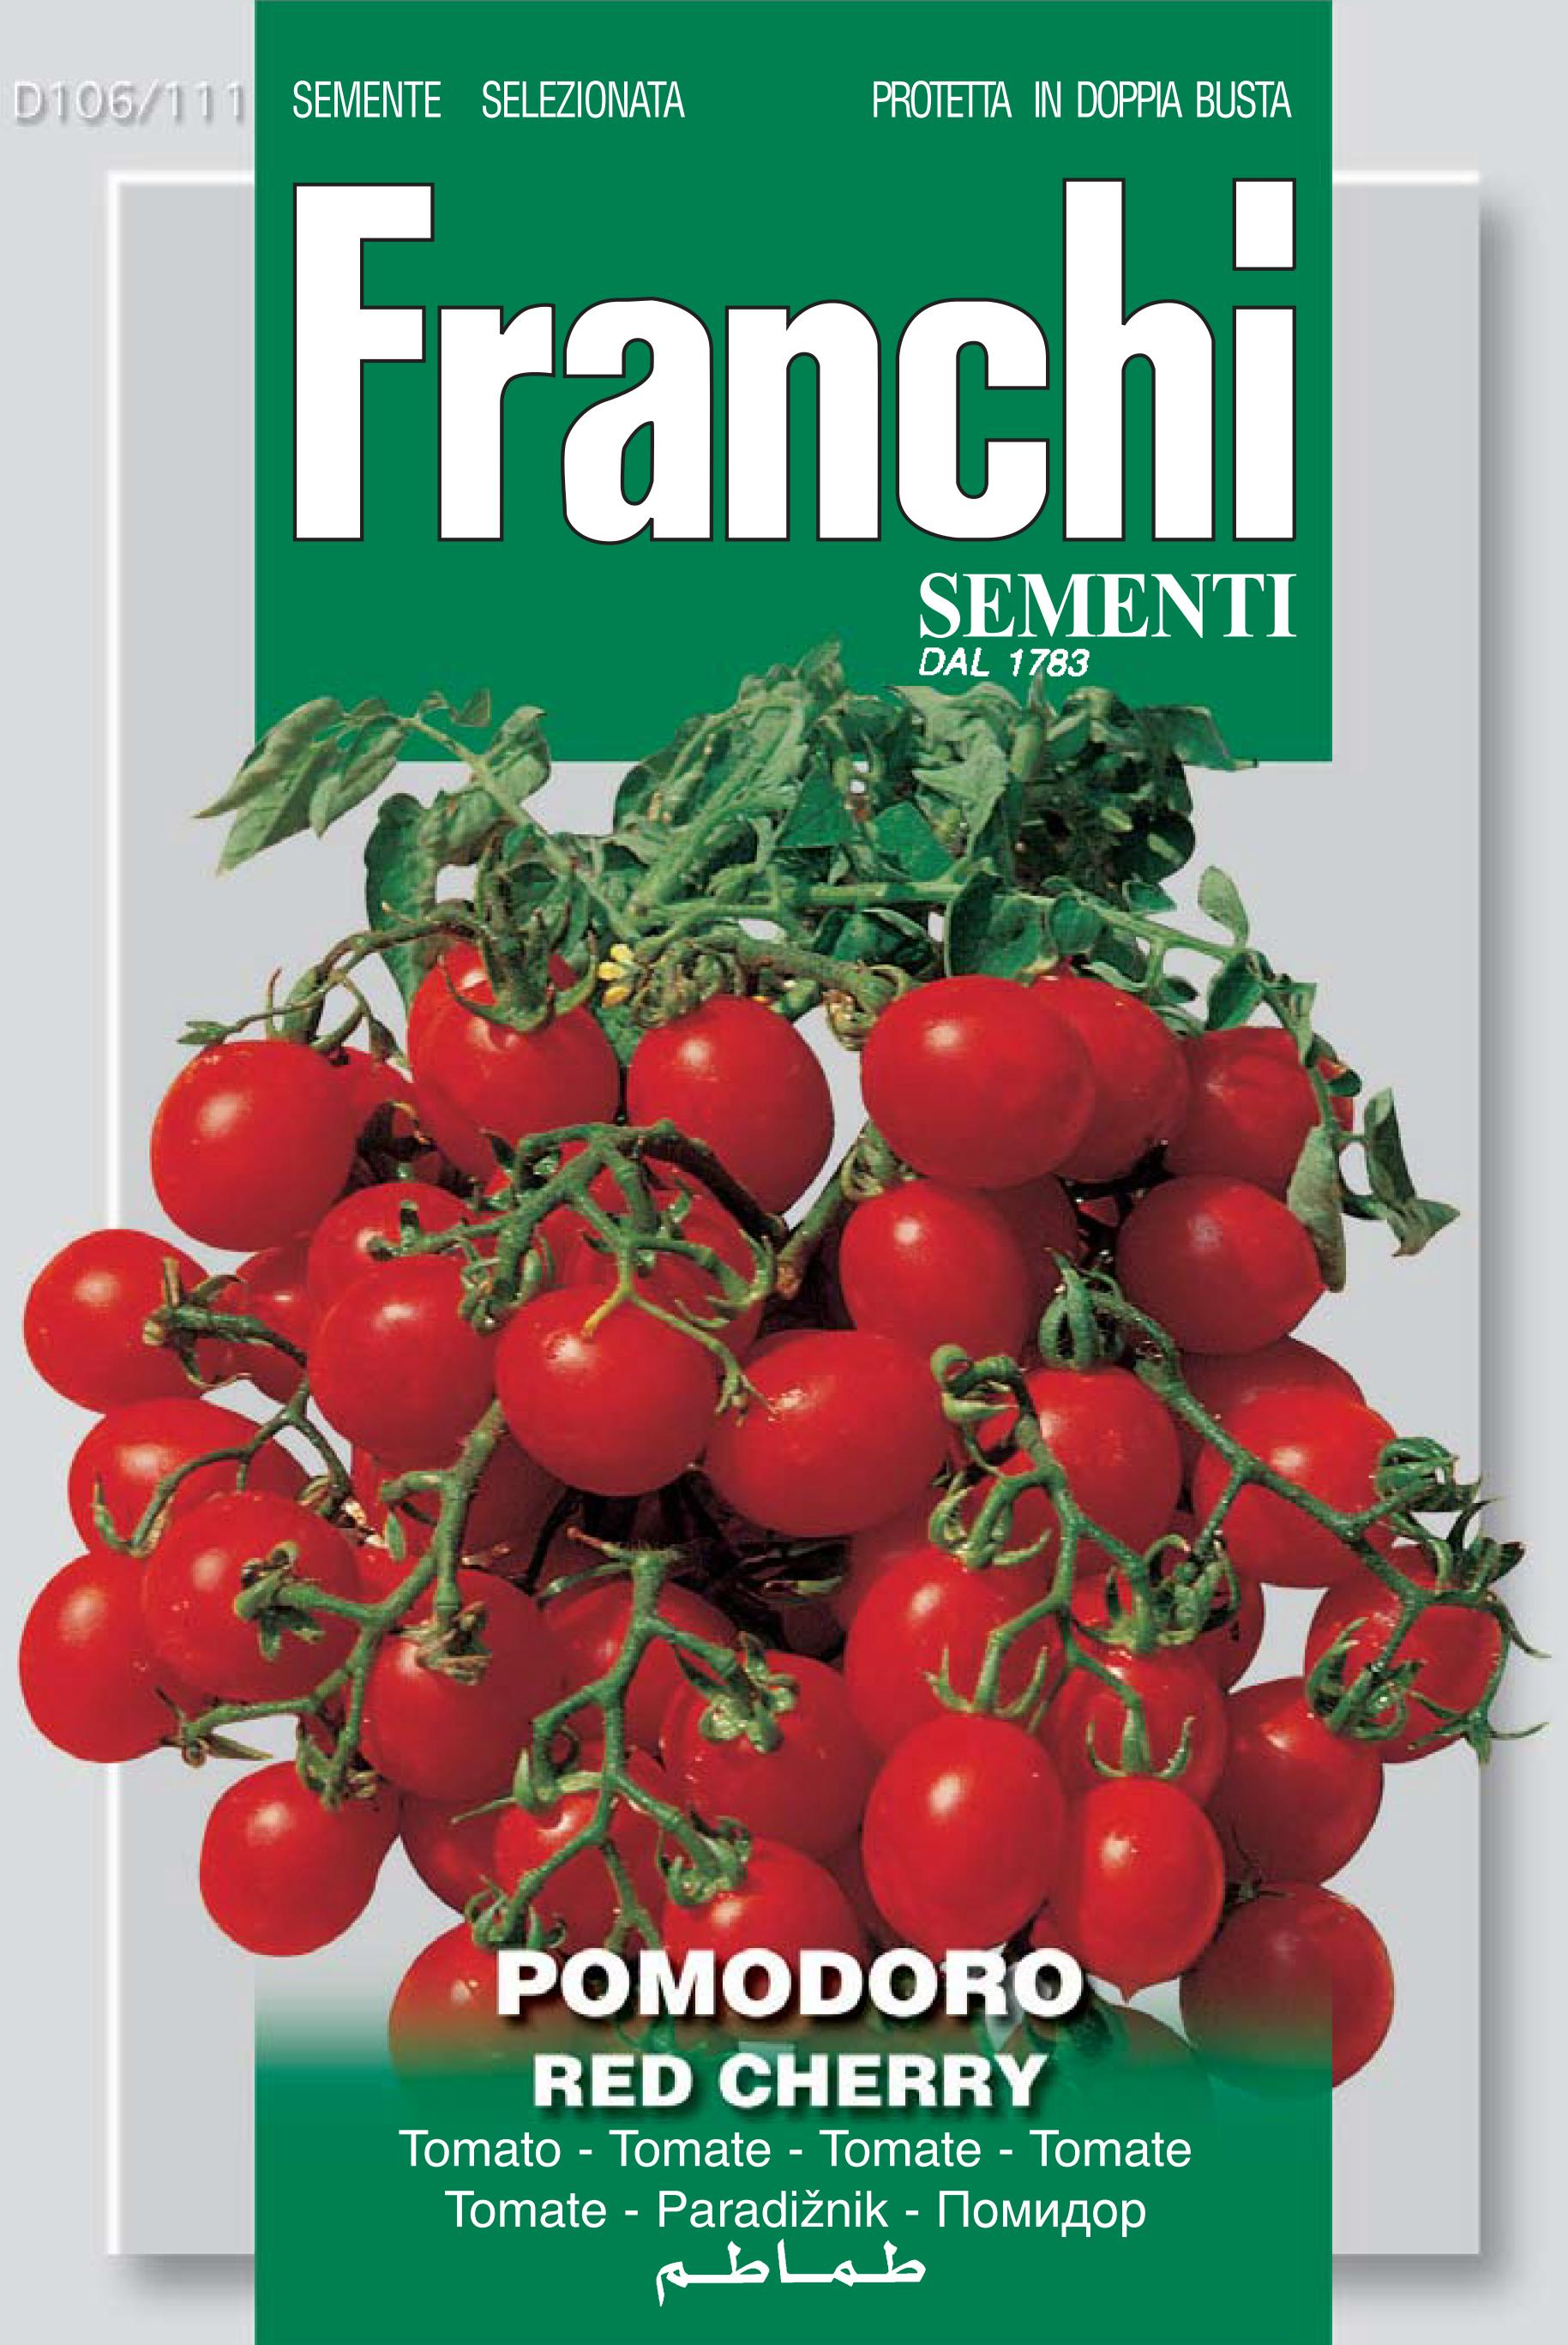 Tomato Red Cherry Also Ideal for Indoor Gardening Systems (A) Solanum Lycopersicum L.